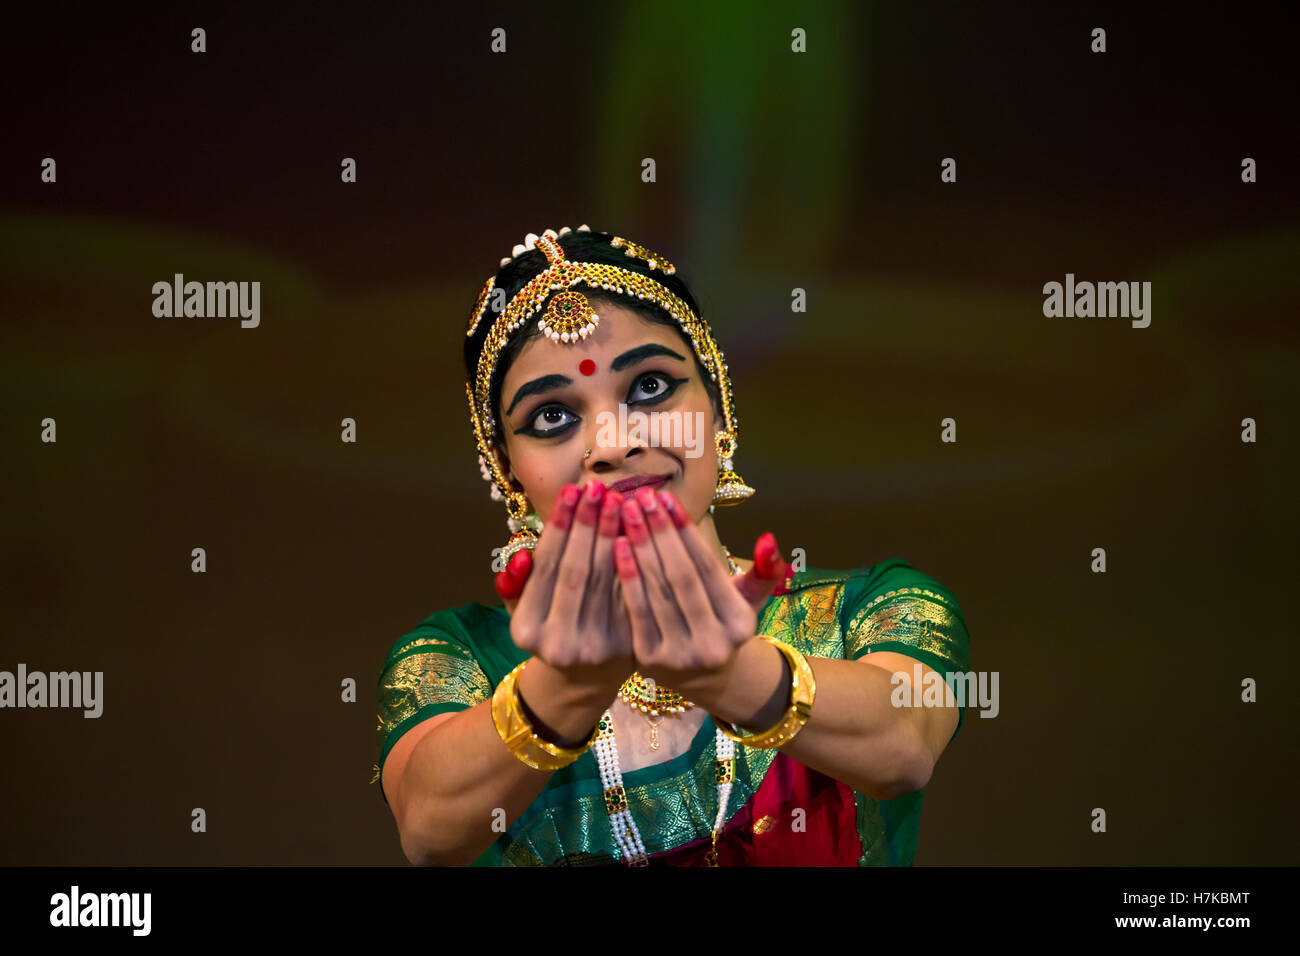 Indian girl is dancing the national clothes during the celebration of Diwali (the Hindu festival of lights) - Stock Image